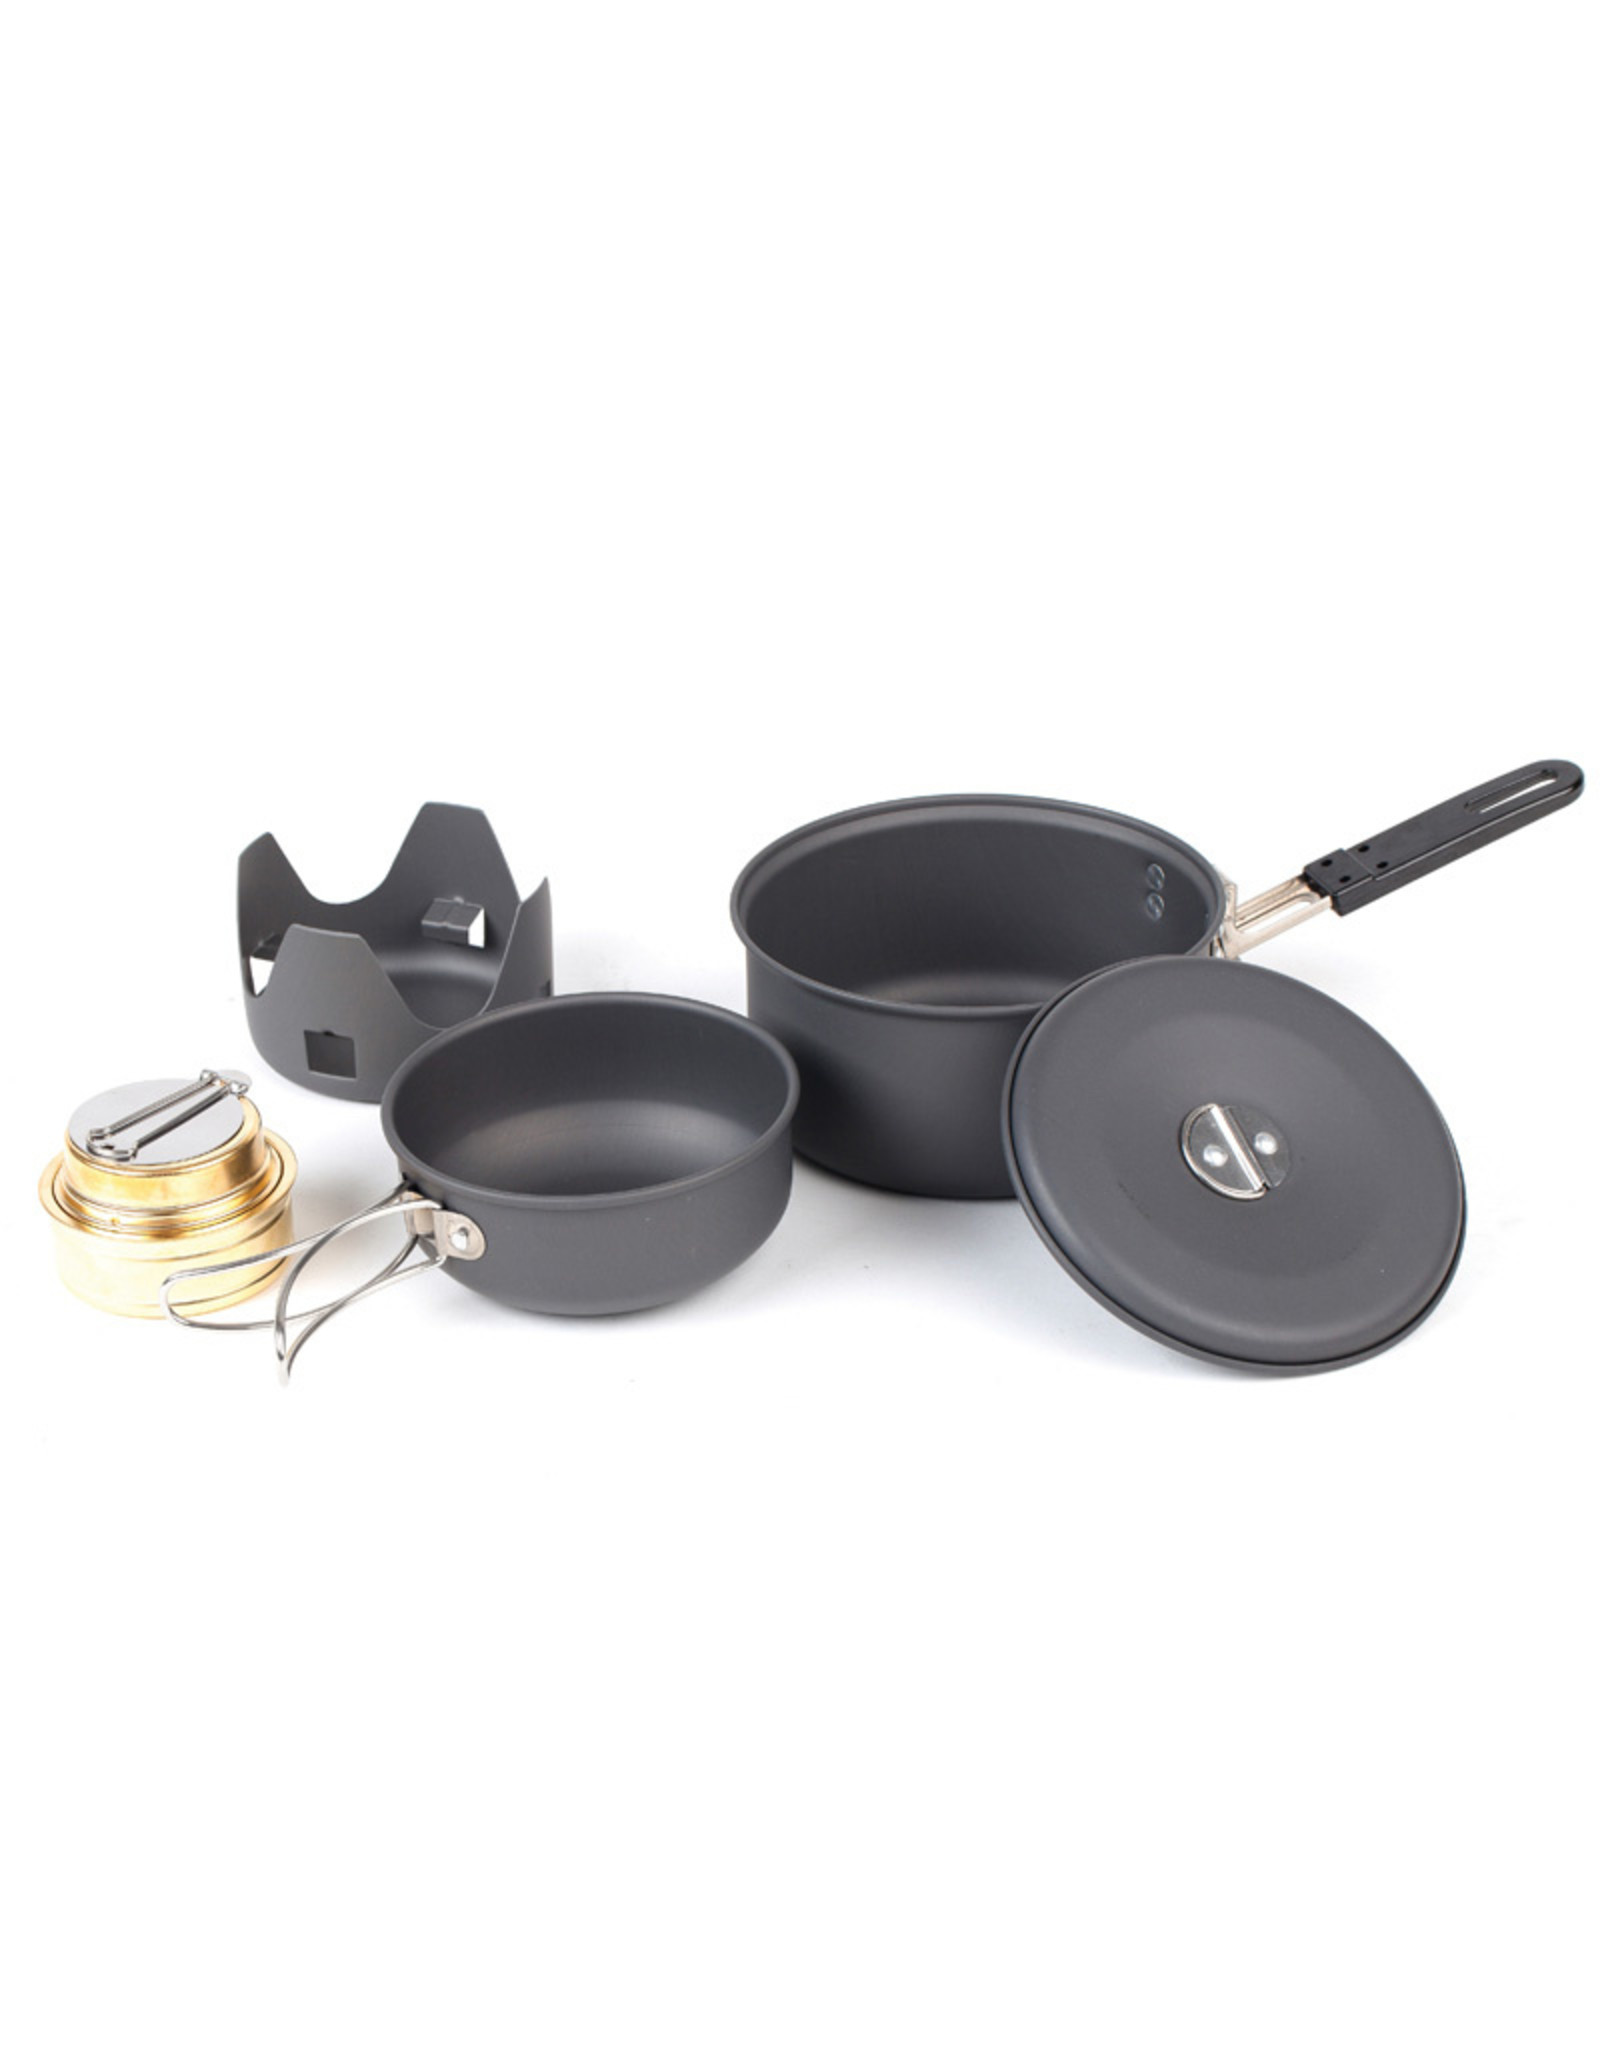 NDUR Mini Cookware Kit with Alcohol Burner